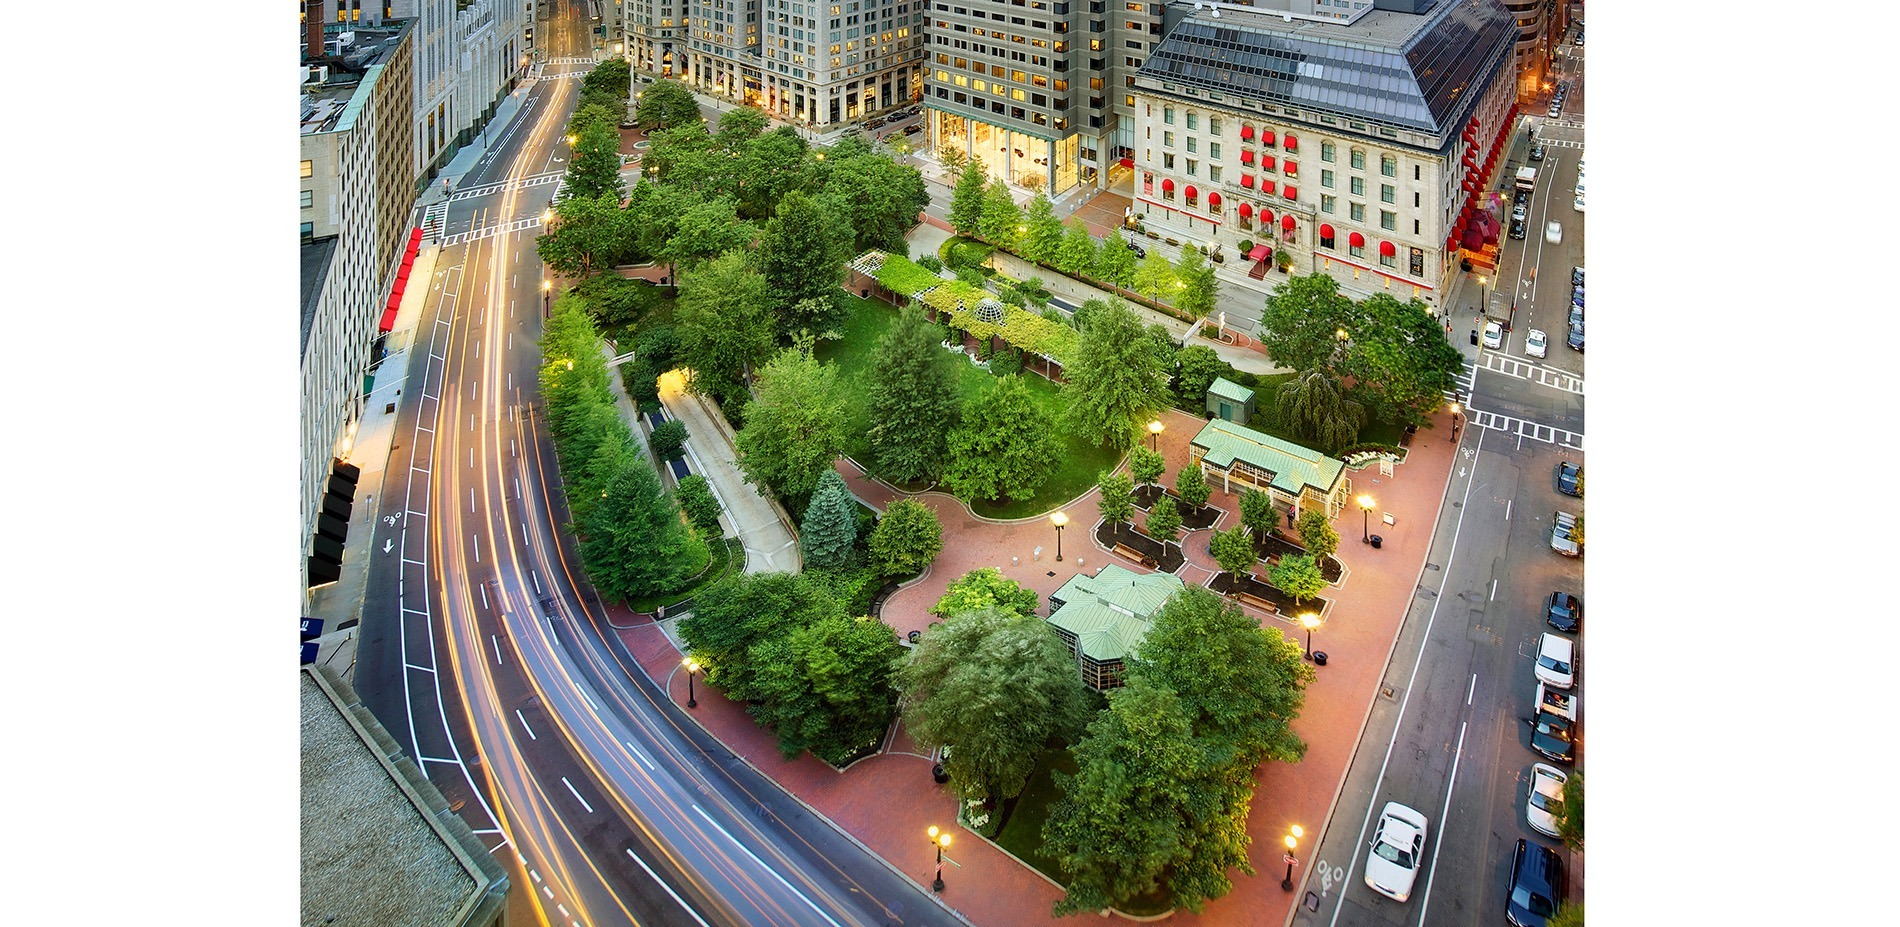 Norman B Leventhal Park At Post Office Square 2014 Asla Make Your Own Beautiful  HD Wallpapers, Images Over 1000+ [ralydesign.ml]